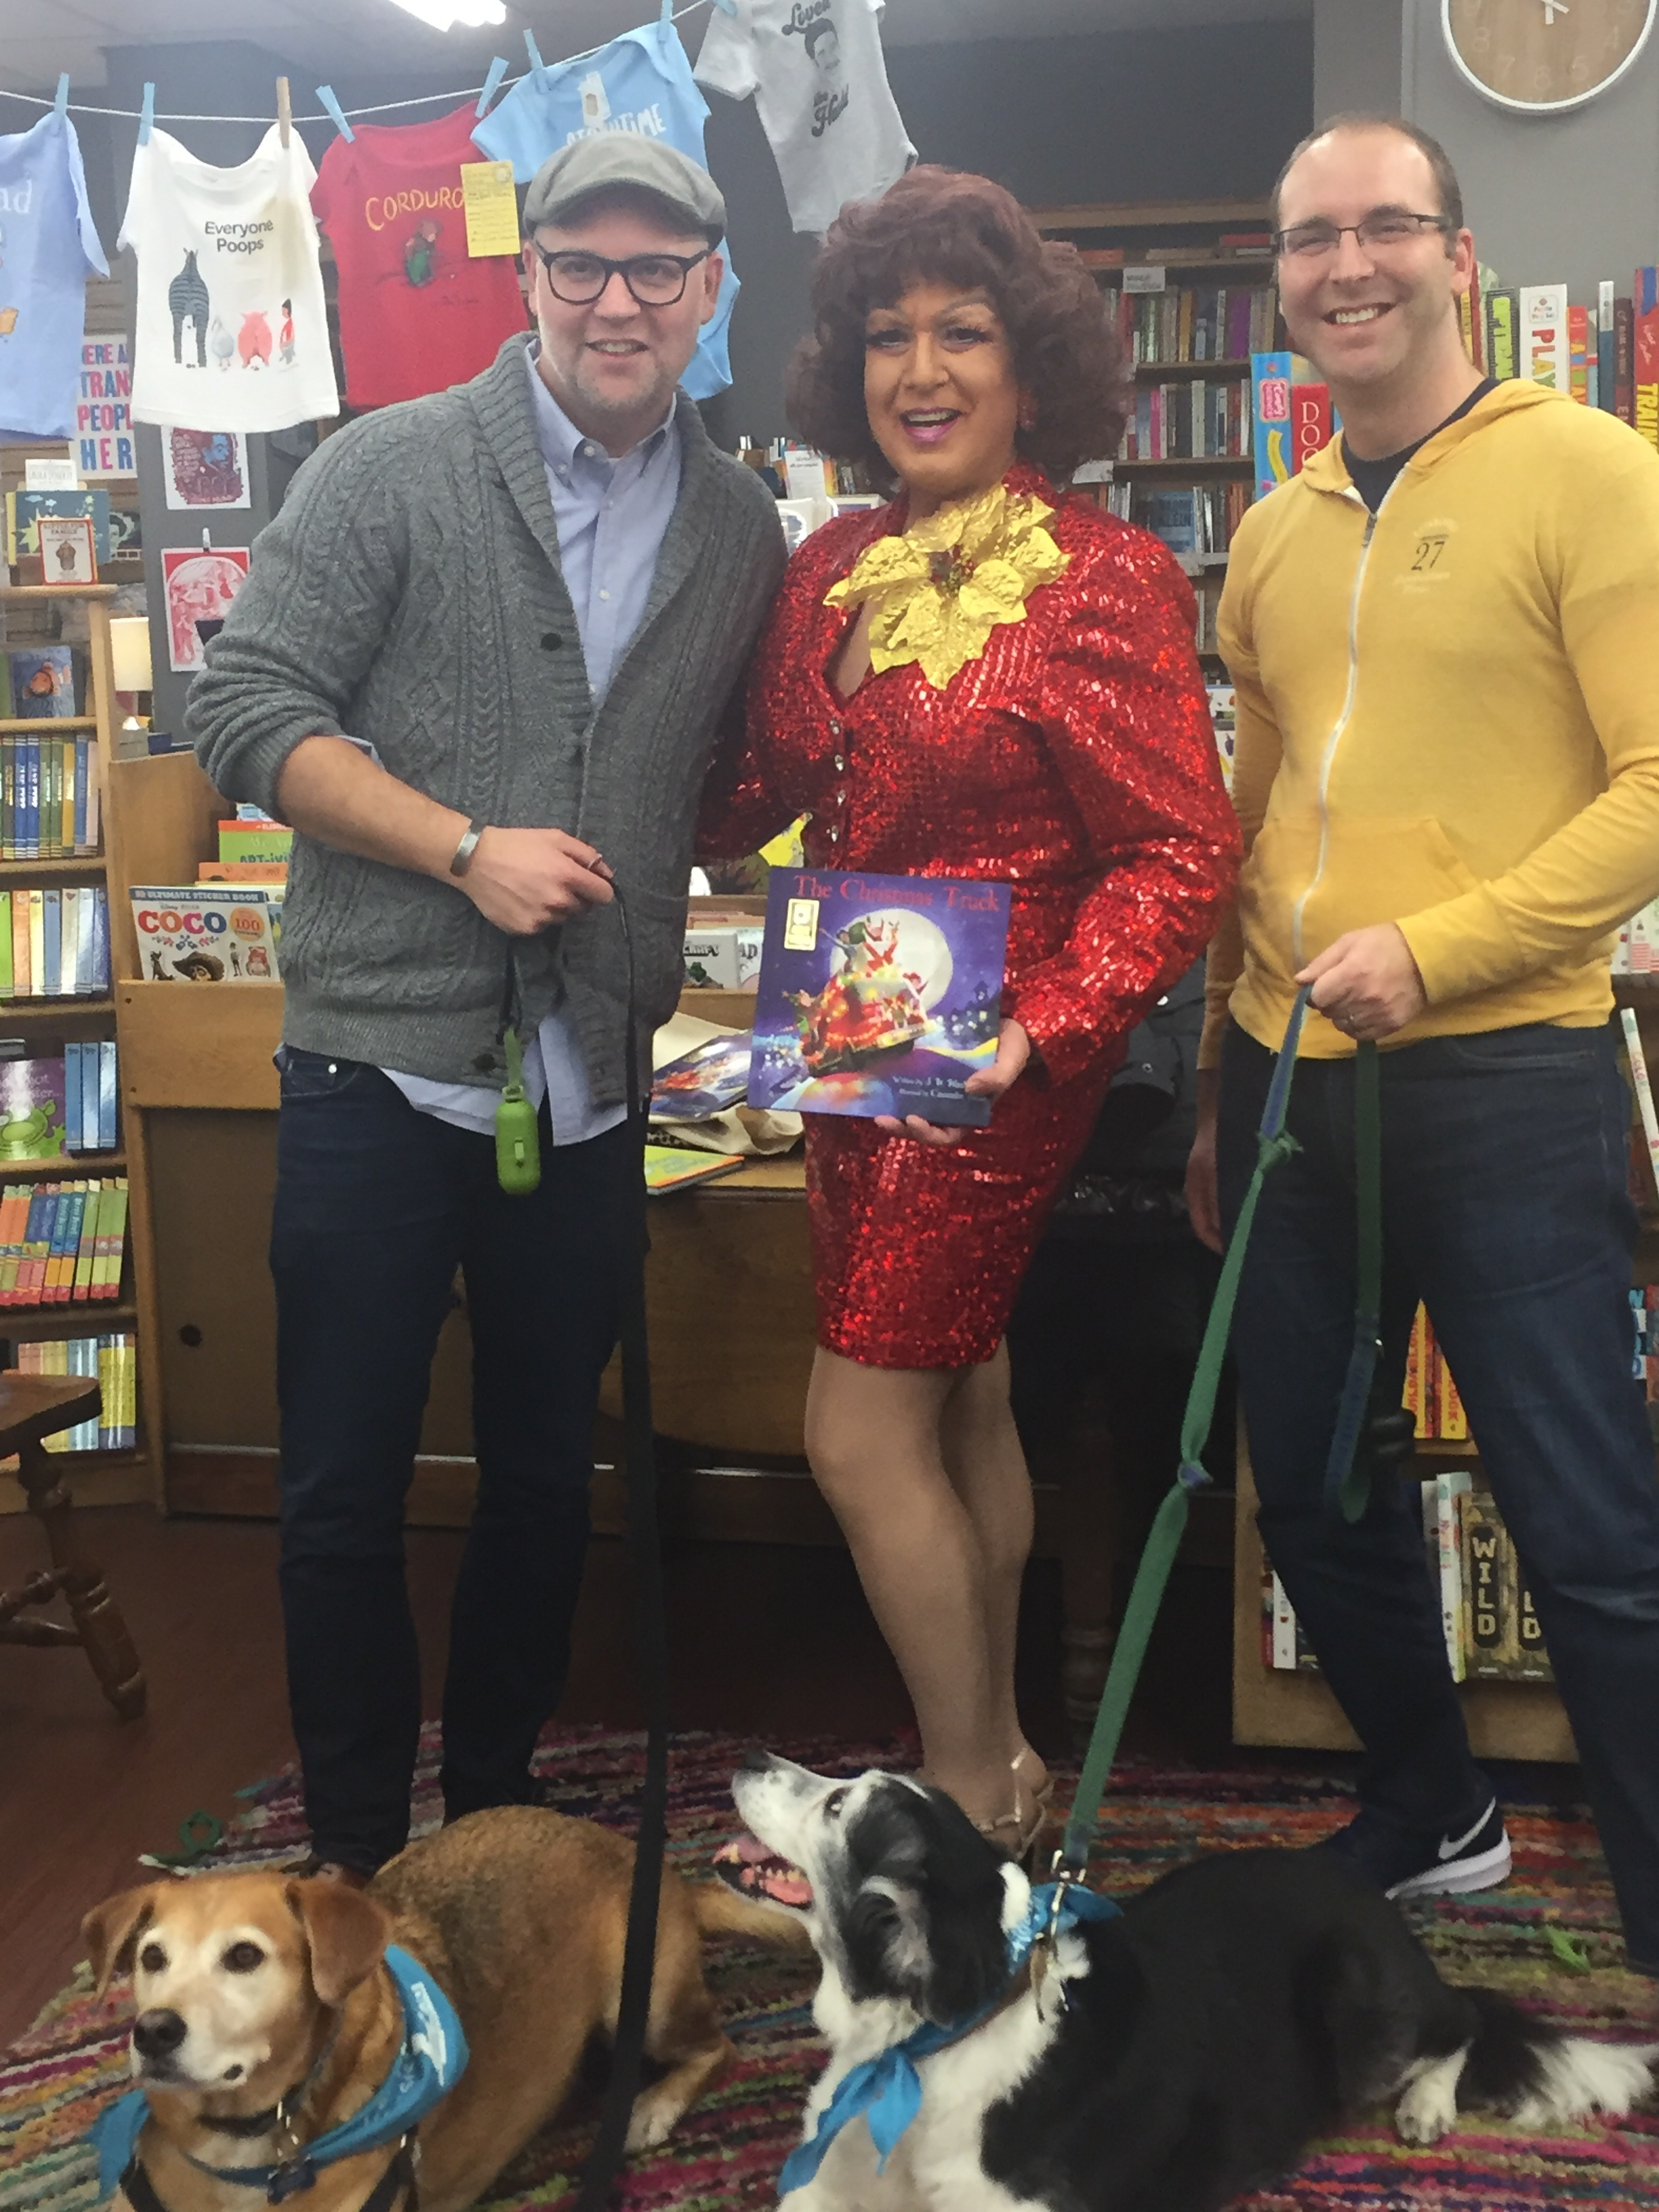 SitStayRead Board Members Bradley Blankenship and Tony Saracco with their Certified Reading Assistance Dogs Cosi and Tilly pose with drag queen Ashley Morgan at the Women & Children First Wishing Tree Read Aloud. (V. Luisi)